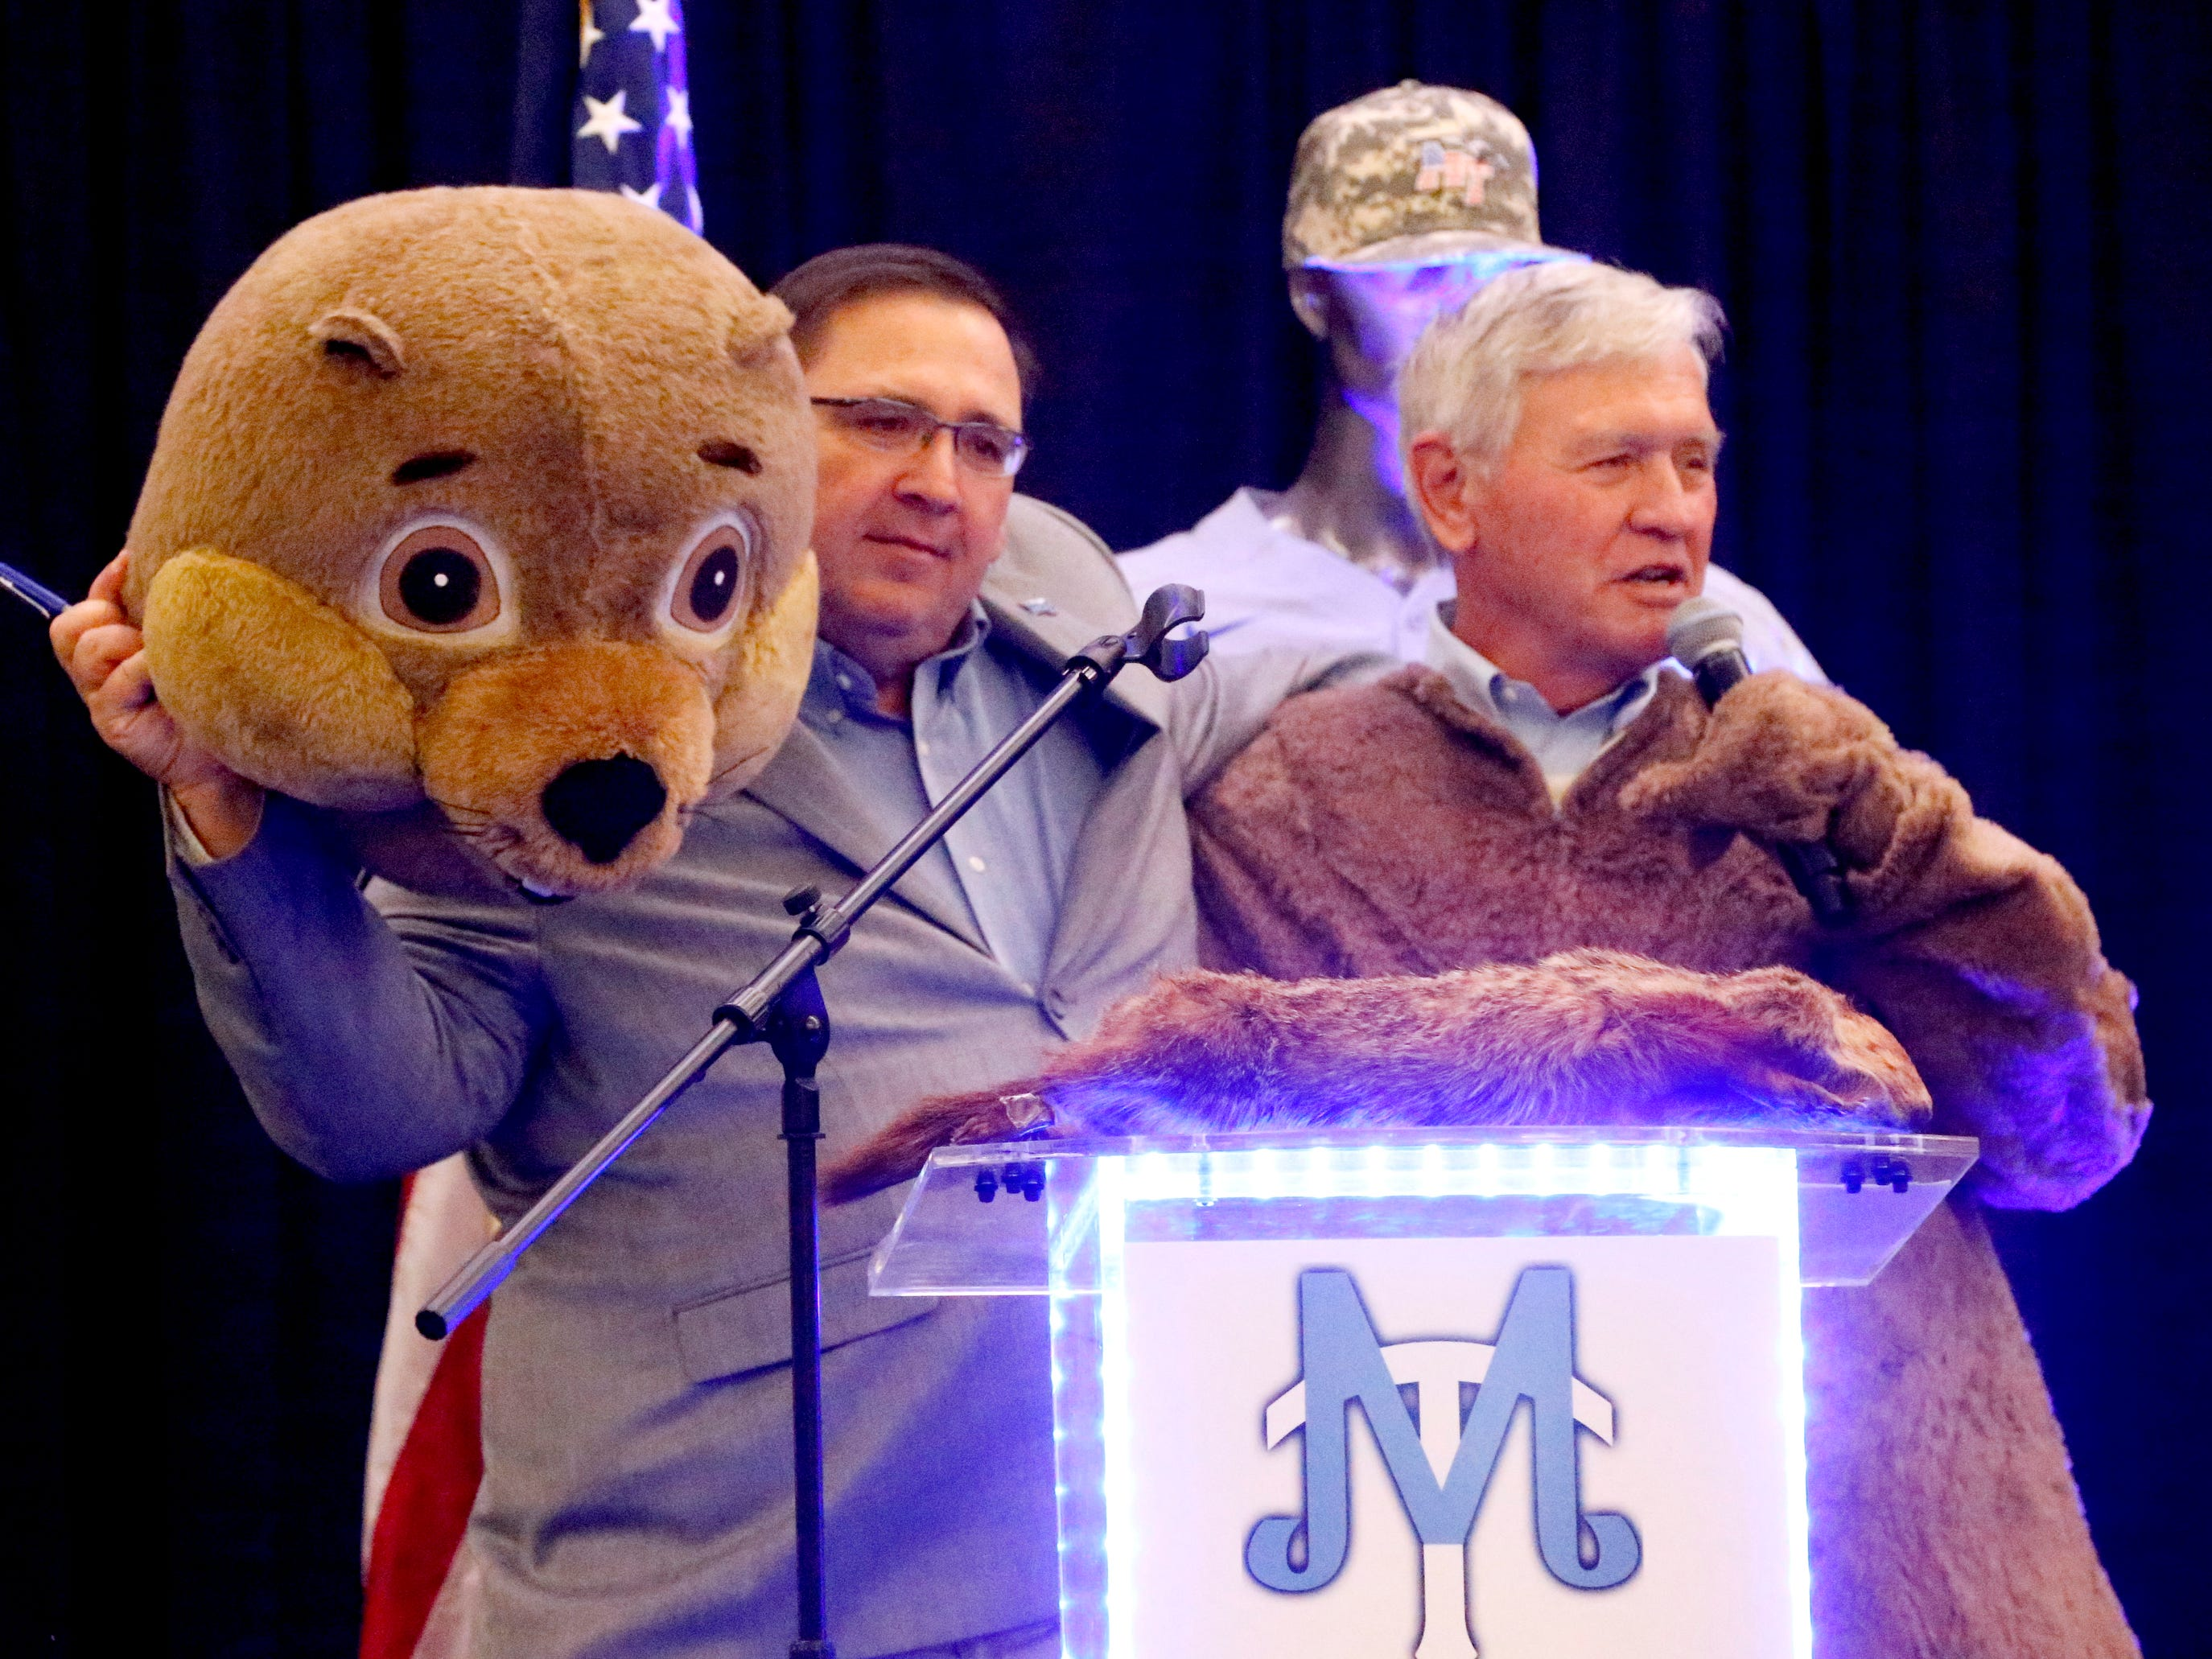 MTSU's new baseball coach Jim Toman, left, holds up the head of Raider 3 on Friday, Feb. 1, 2019, after it was revealed that former MTSU baseball Coach Steve Peterson was in the Raider 3 costume.